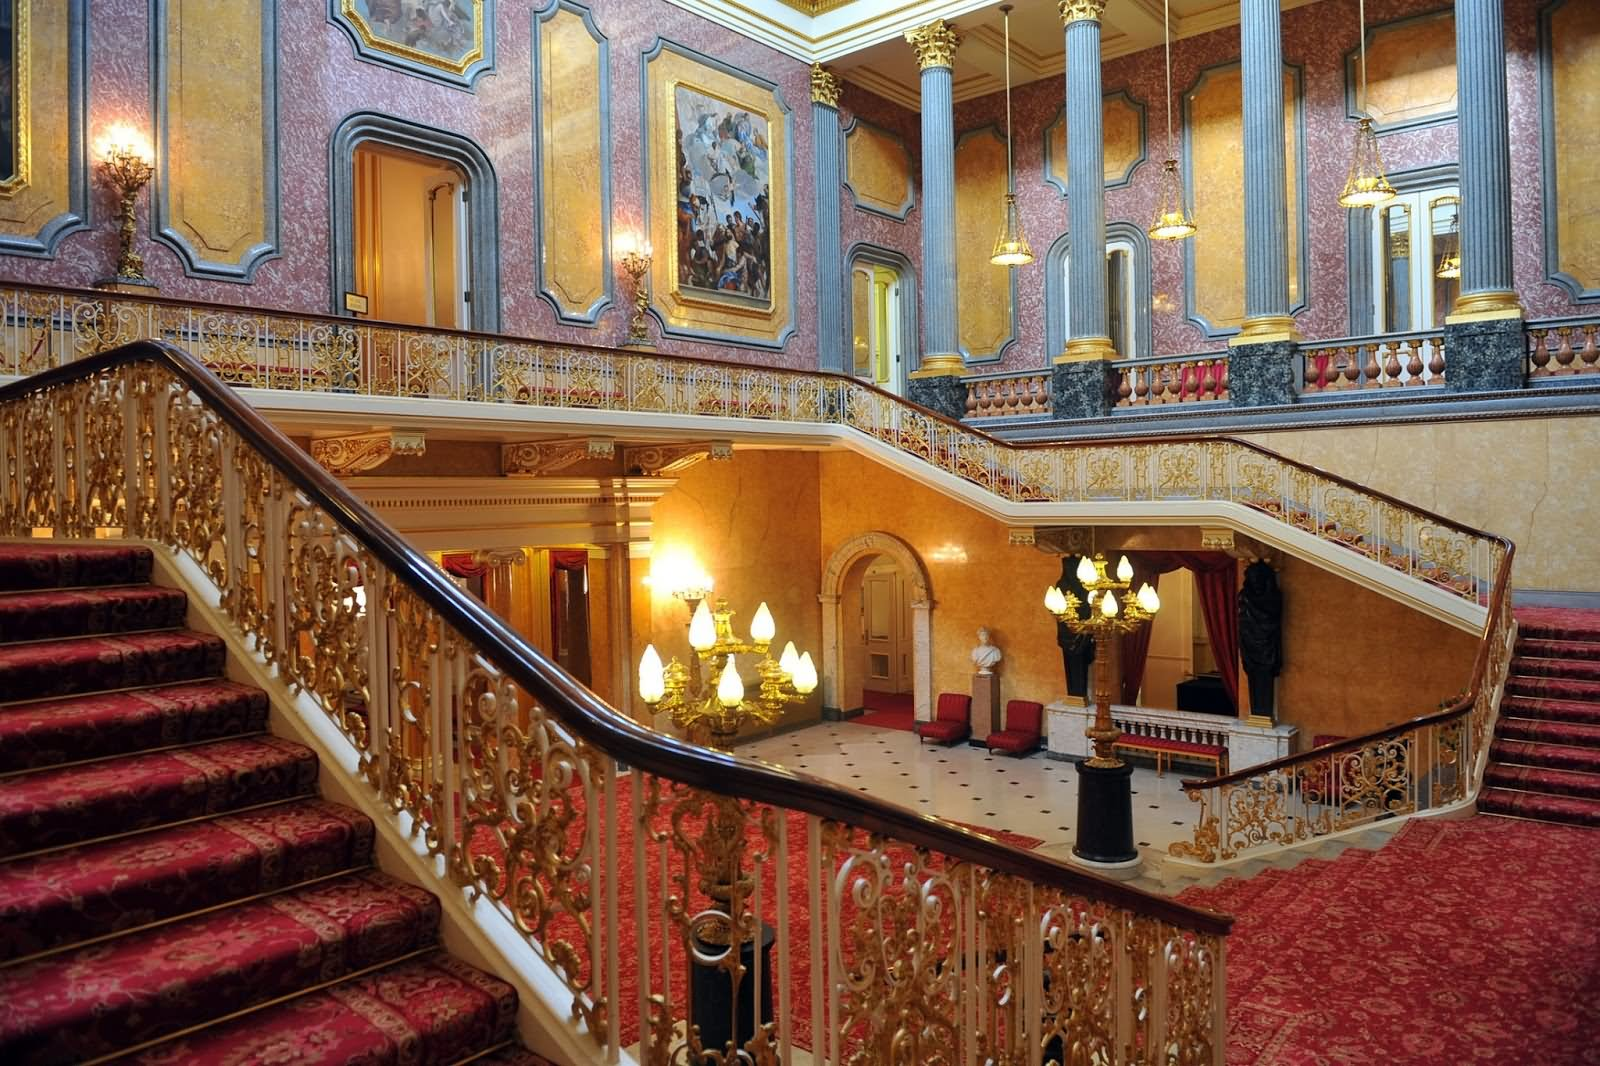 Buckingham Palace Interior View Picture - THE MOST BEAUTIFUL INTERIOR PICTURES OF BUCKINGHAM PALACE LONDON